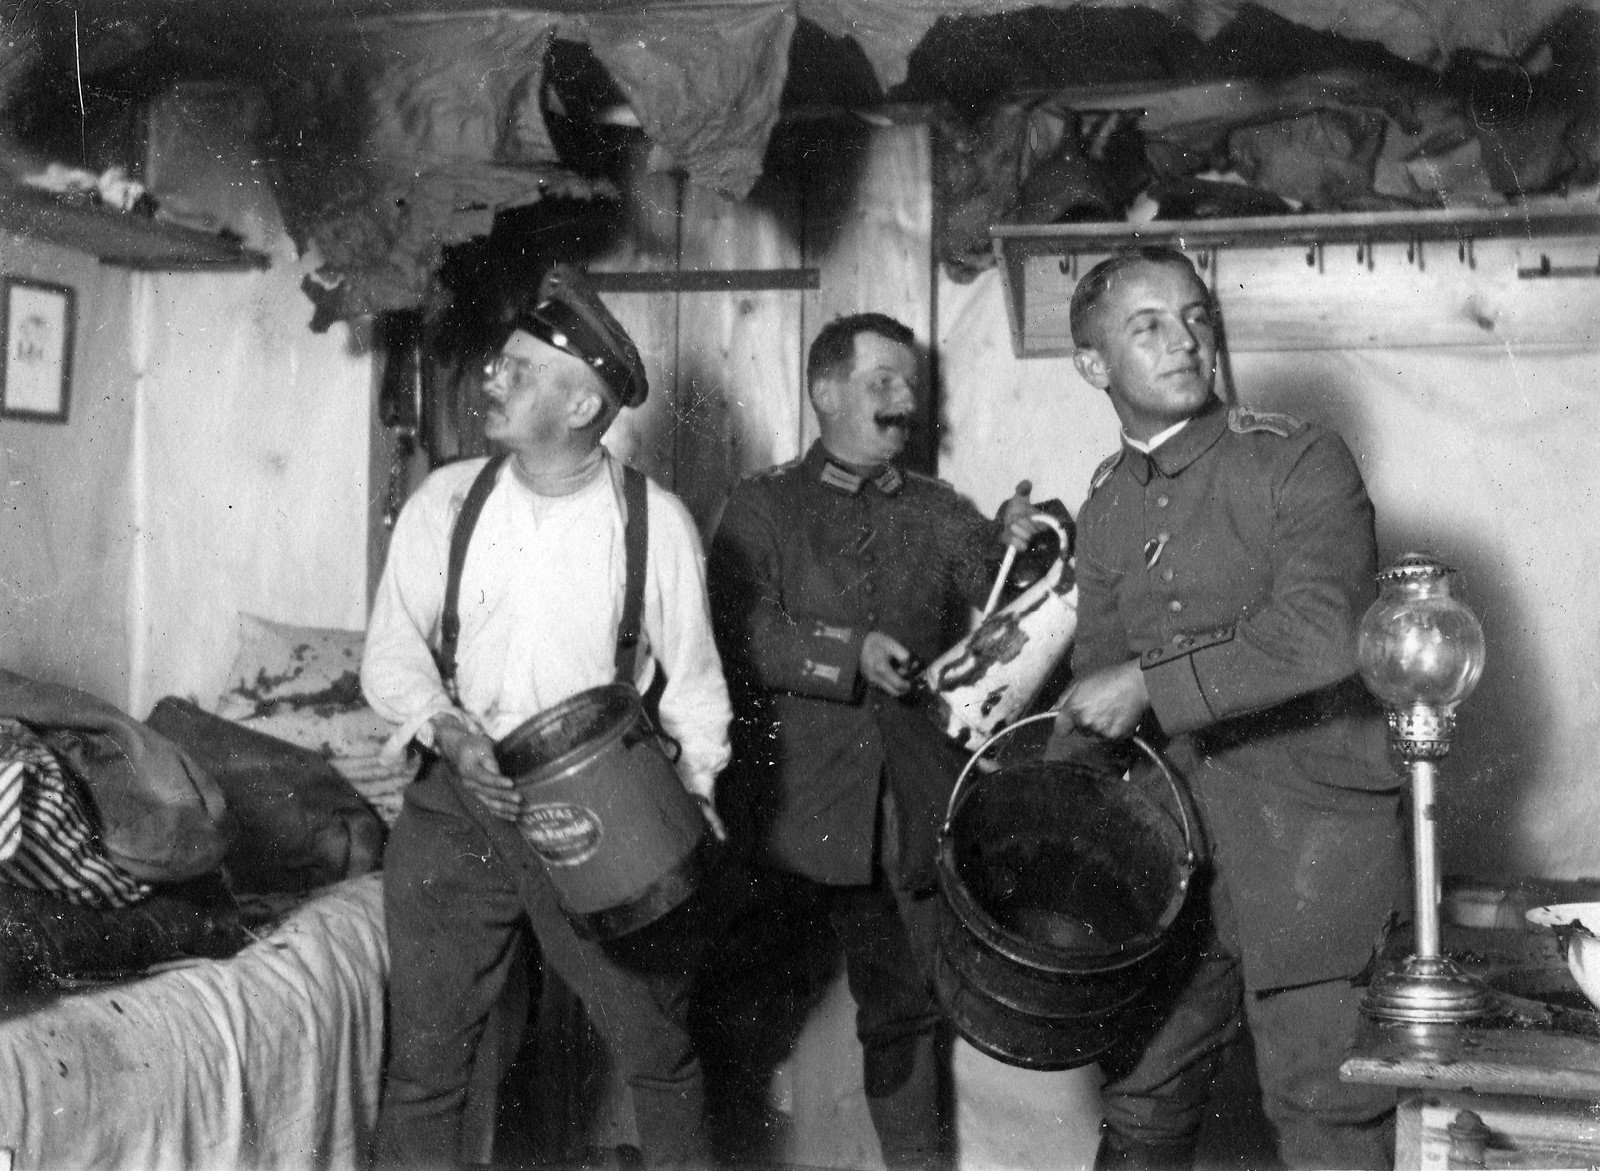 Staged photo of some officers putting out a fire in the barracks, photographer unknown, Rolf Kranz / Europeana 1914-1918, CC BY-SA